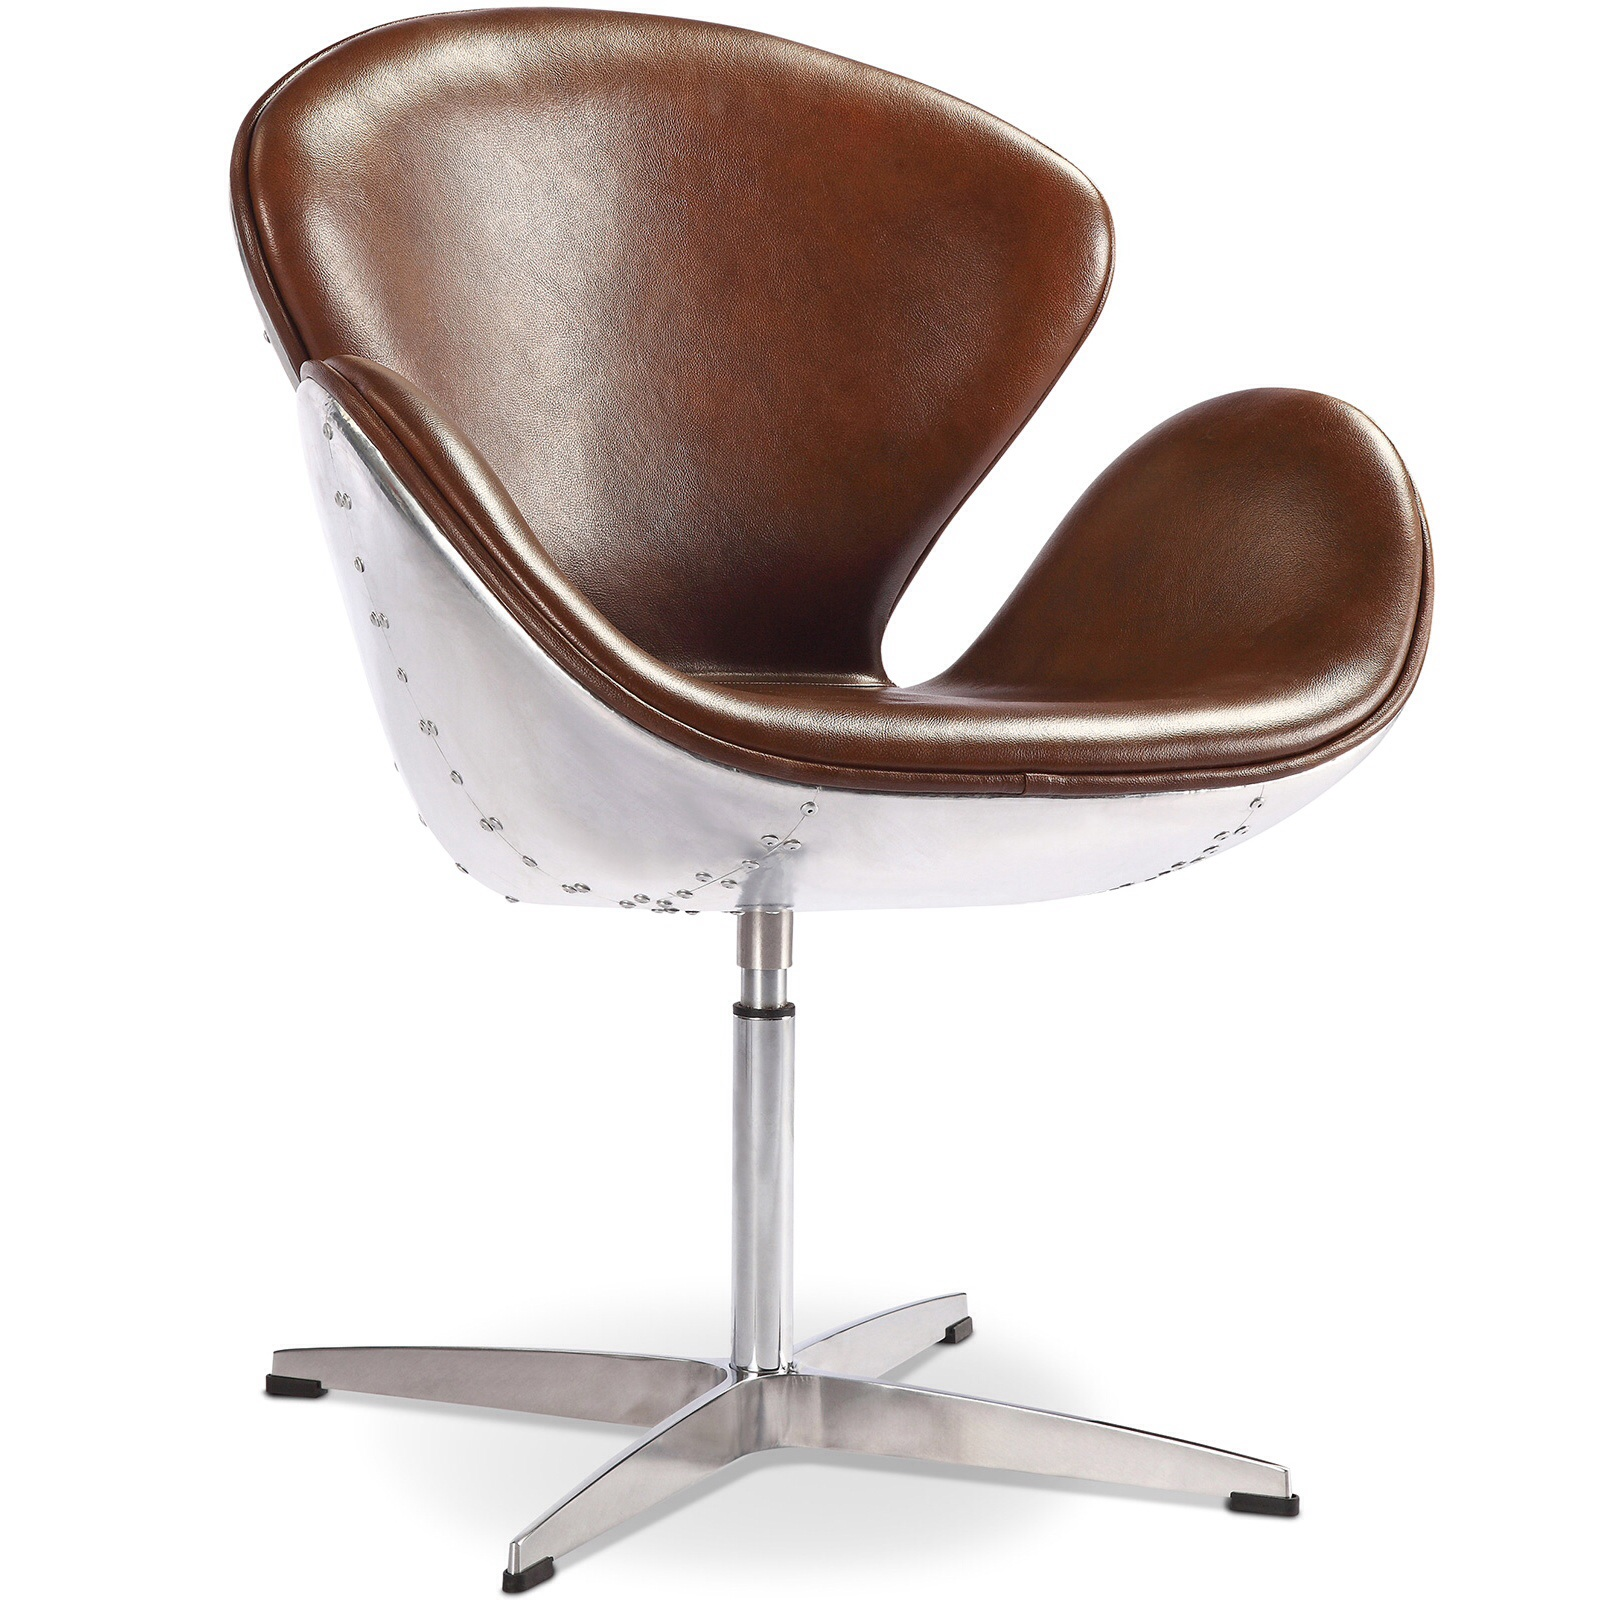 Aeronautical Swivel Petal Chair Brown Aged  Leather style